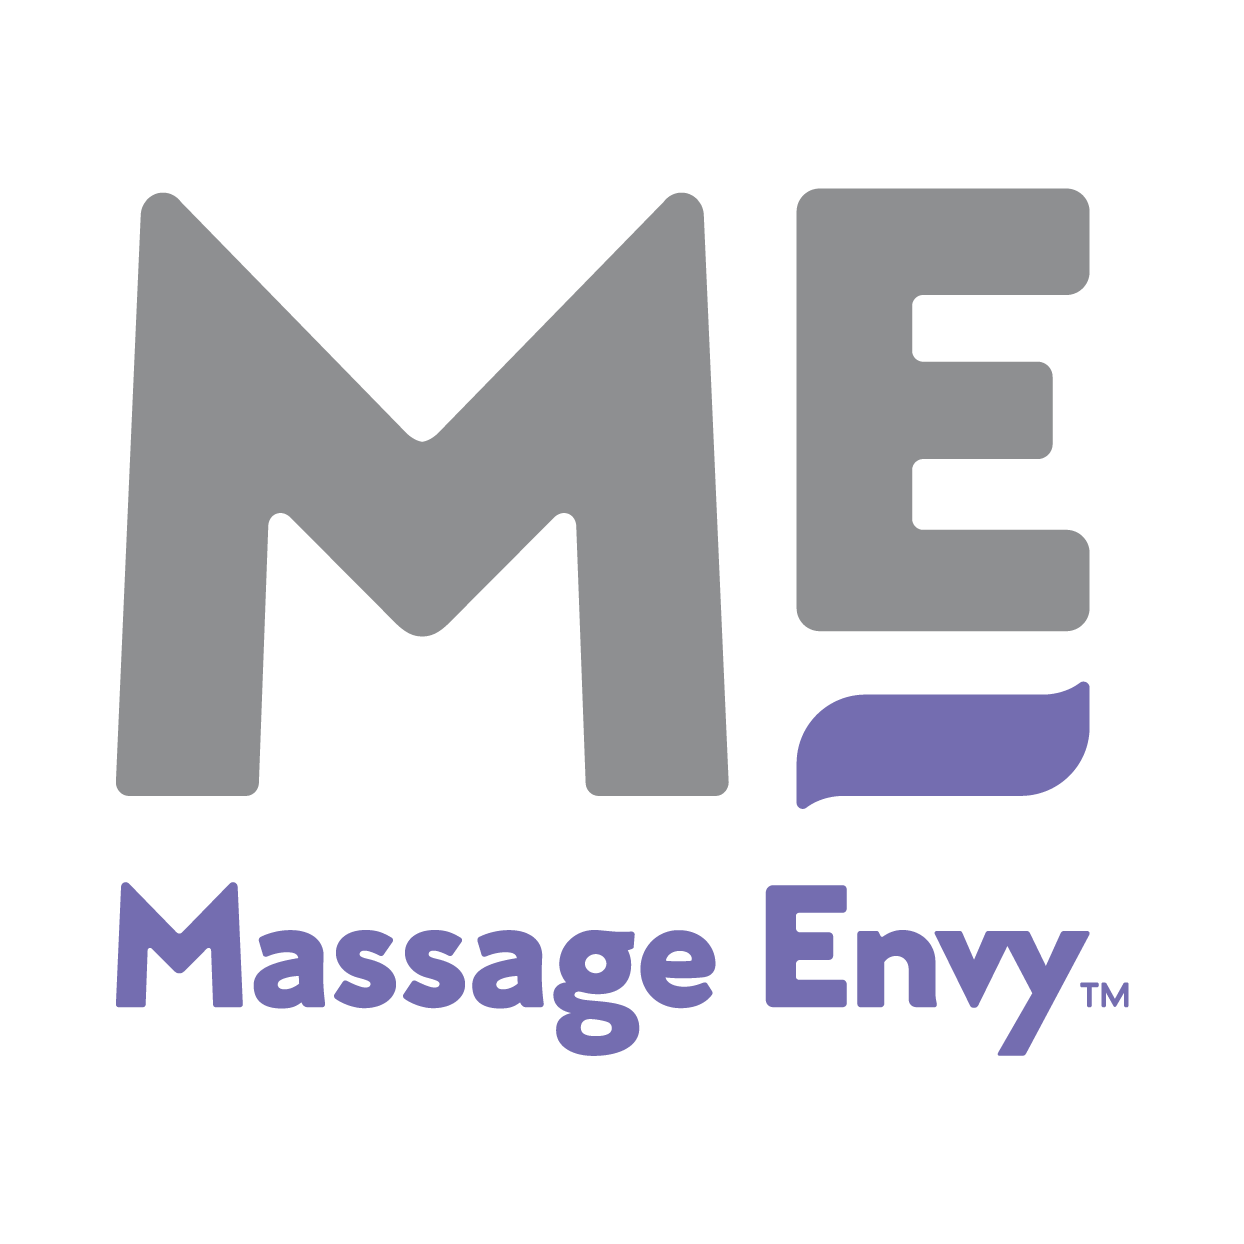 Spa Services in IN Valparaiso 46383 Massage Envy - Valparaiso 300 Porter's Vale Blvd Suite 110 (219)476-7474